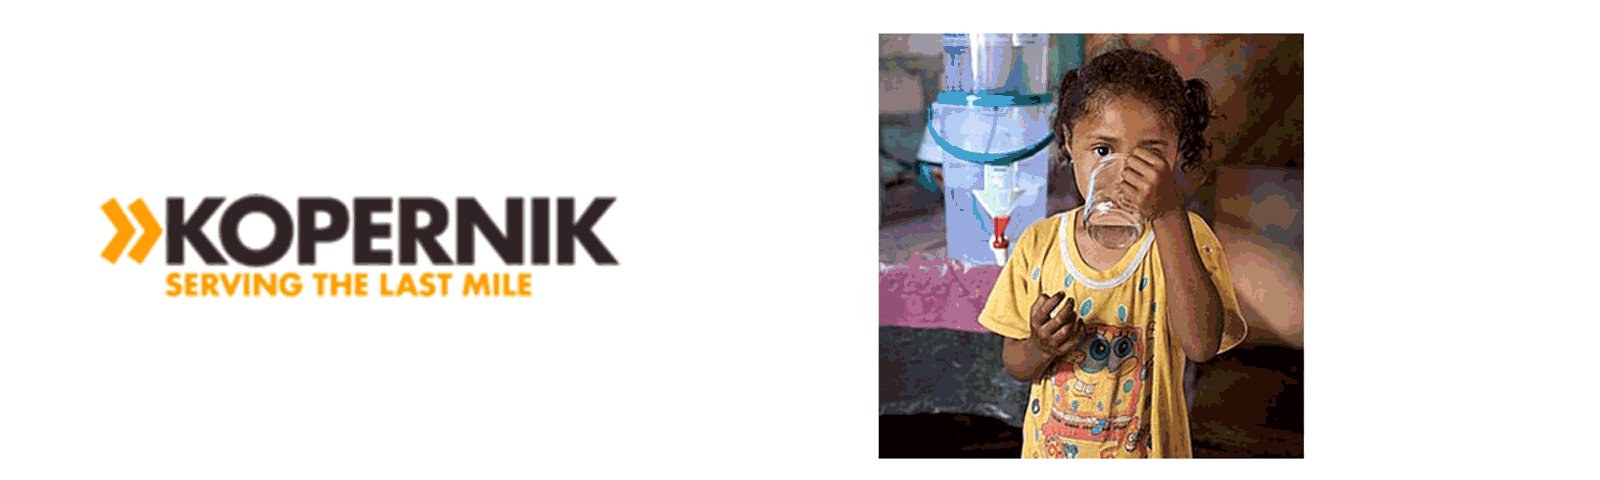 Photo of Kopernik logo and child with clean drinking water